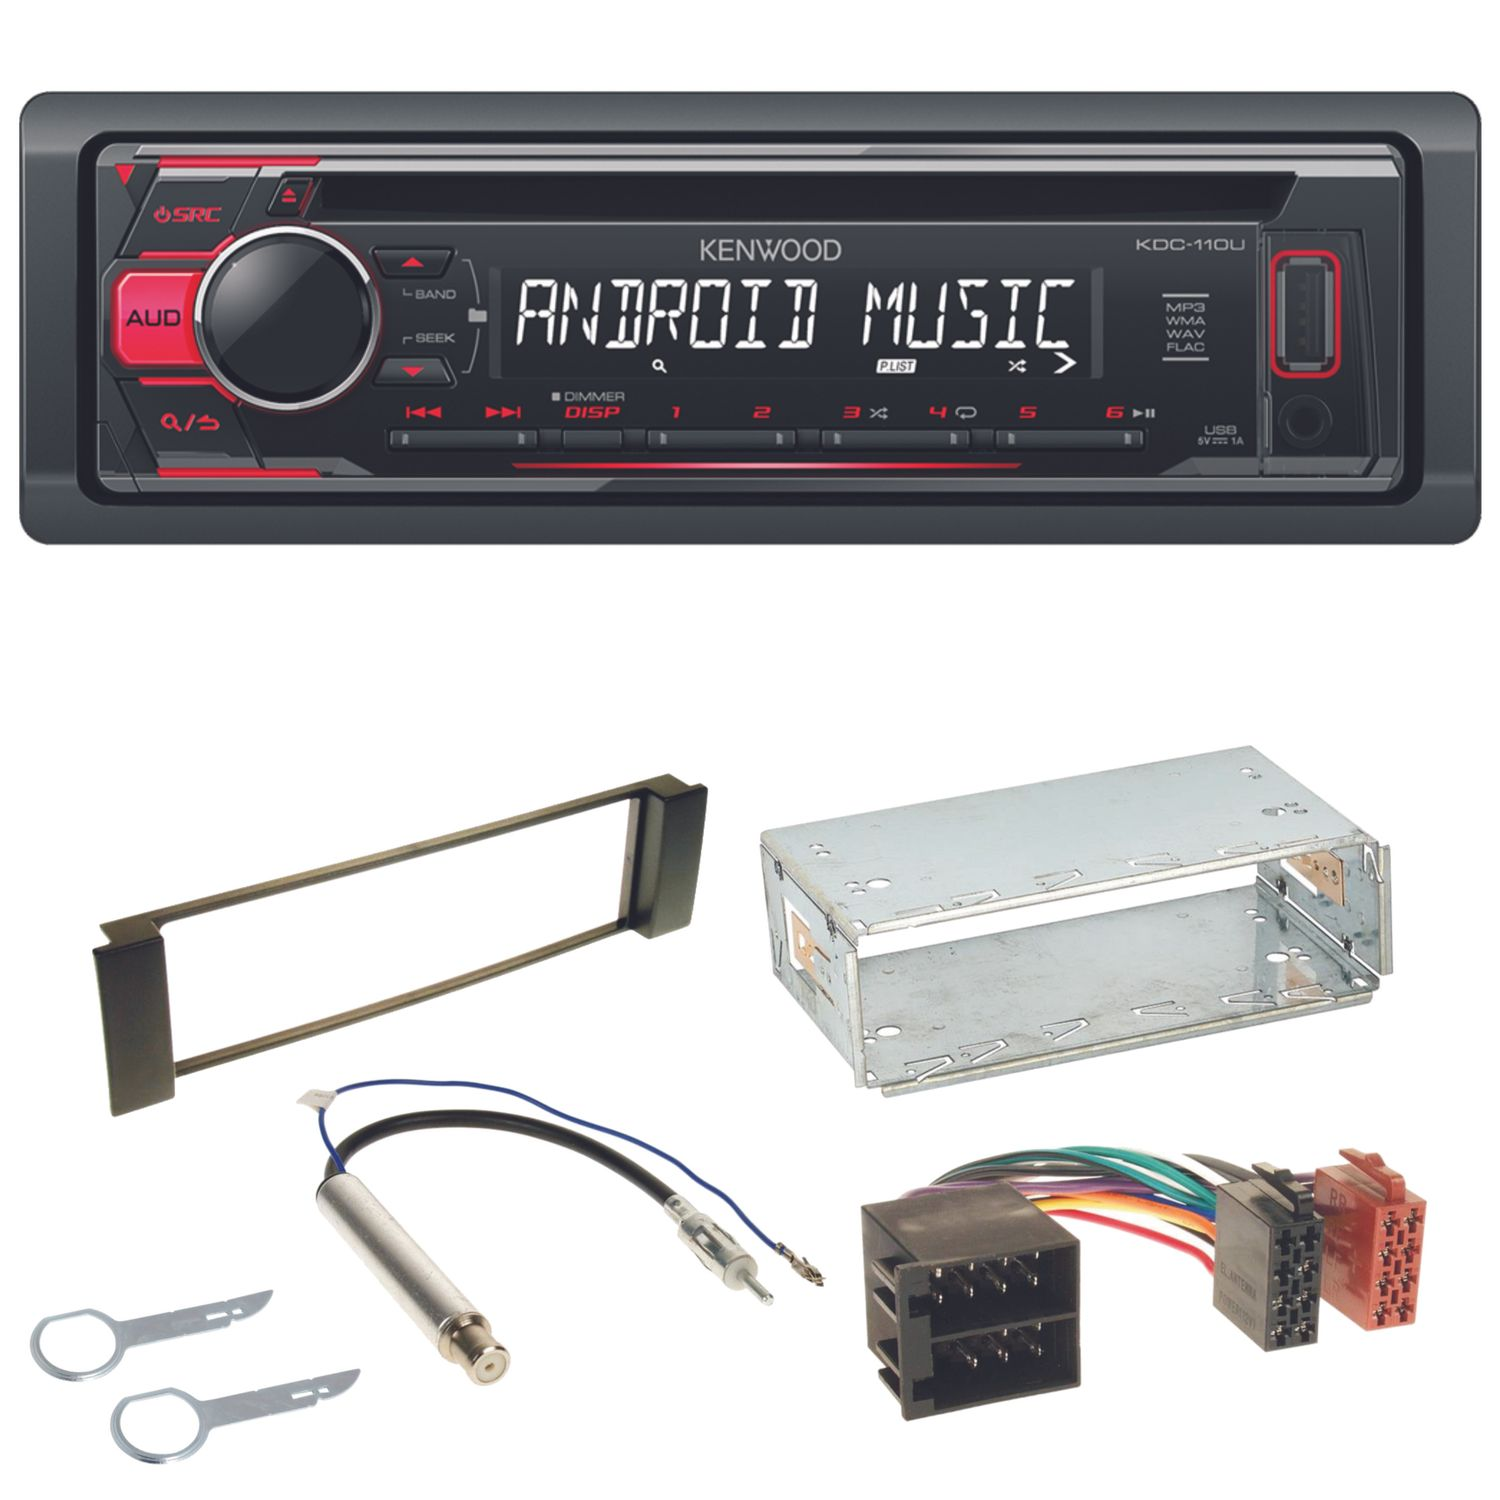 Kdc 110ur usb autoradio aux mp3 flac cd einbauset f r seat for Mueble 2 din seat leon 1m